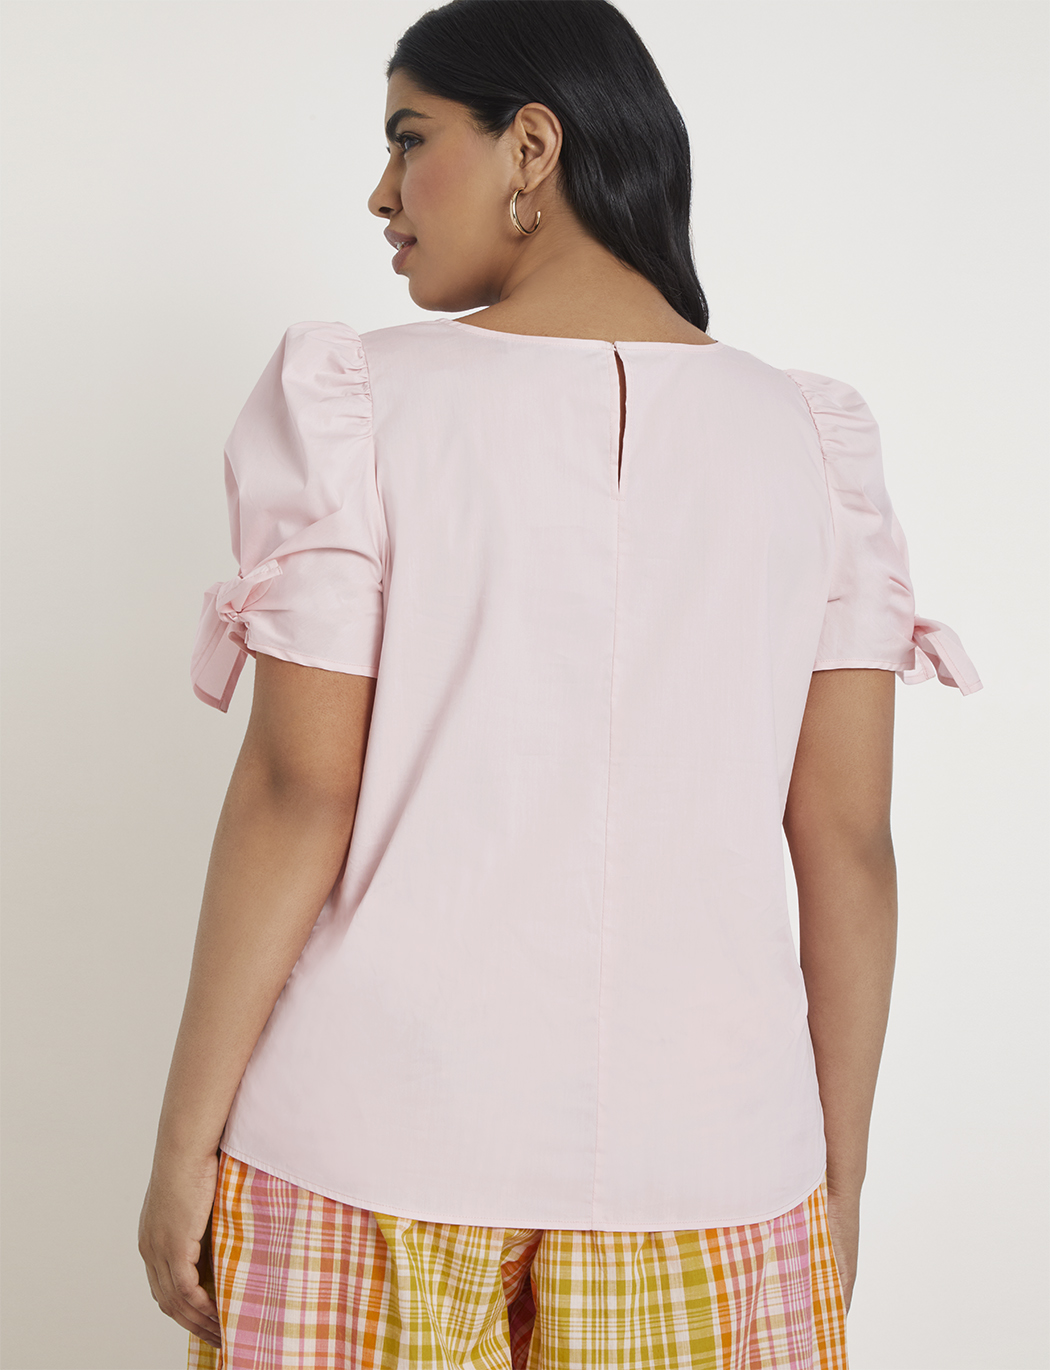 Puff Sleeve Tie Top